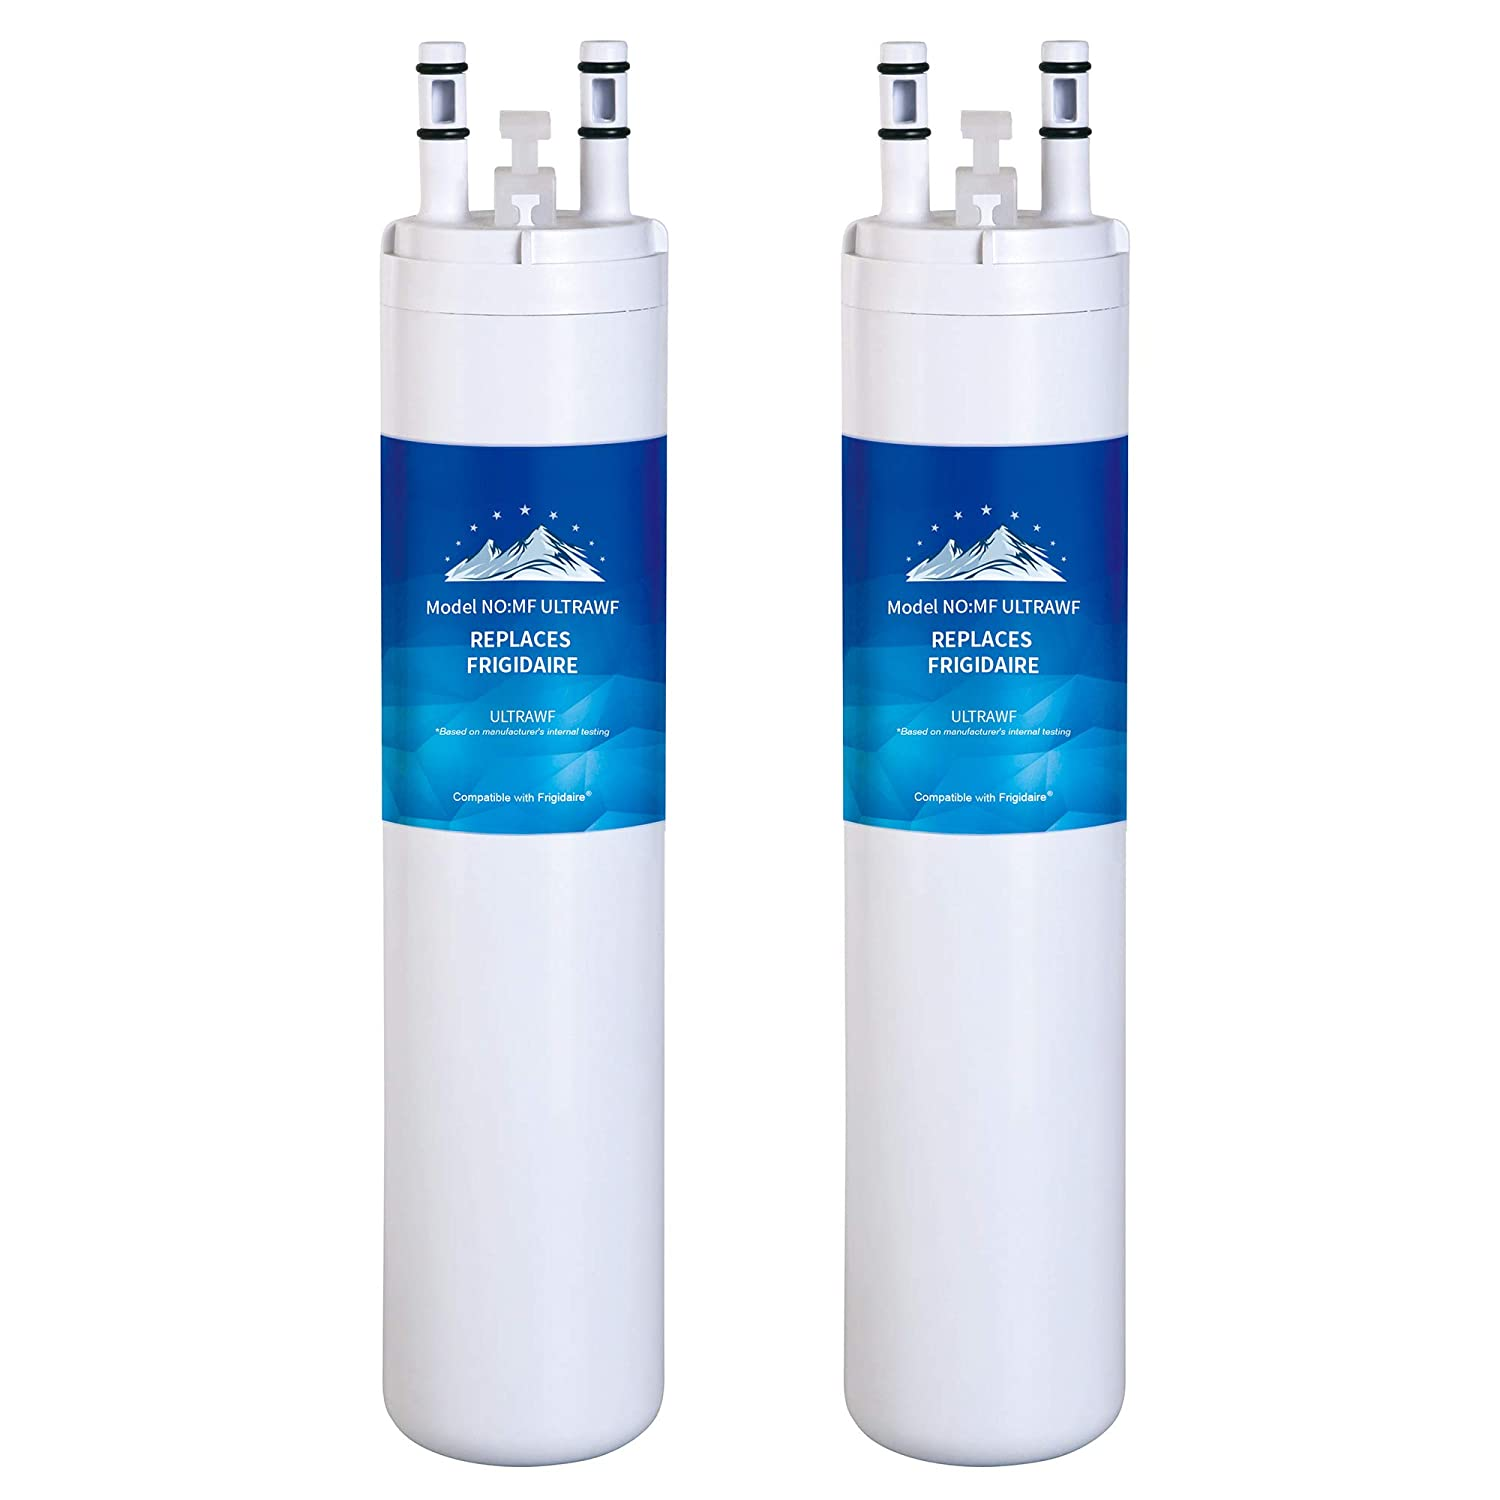 Mountain Flows U|LTRAWF Compatible Refrigerator Water Filter - 9999 water filter - 2 Pack